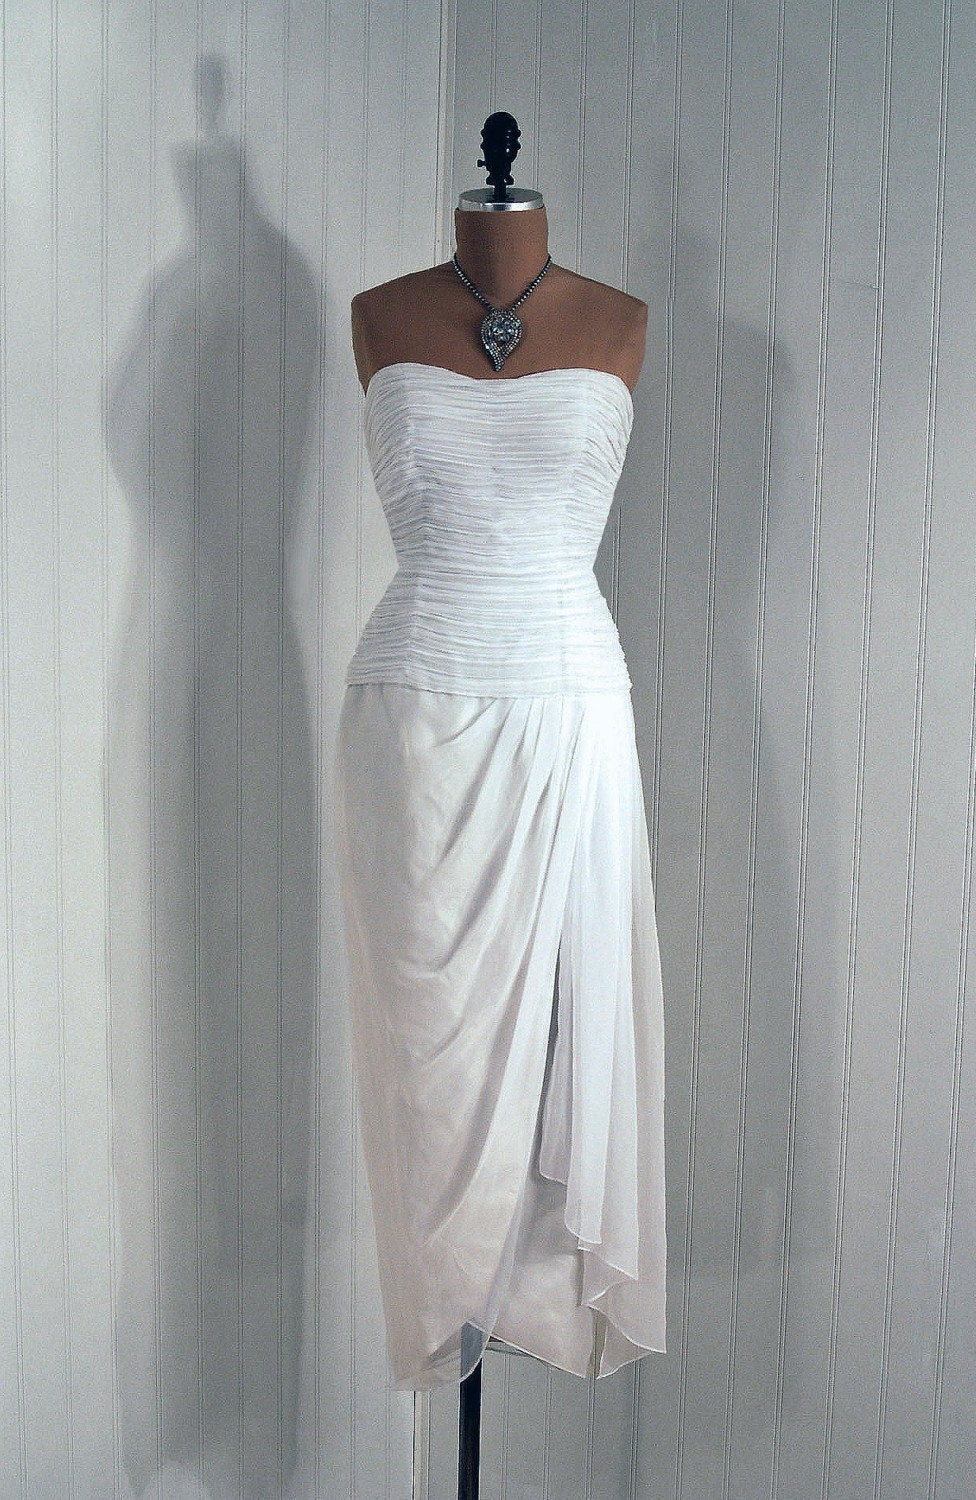 1970's Vintage Mignon Designer-Couture Strapless Crisp-White Heavily-Ruched Chiffon Hourglass Draped-Grecian Wedding Party Cocktail Dress Gown